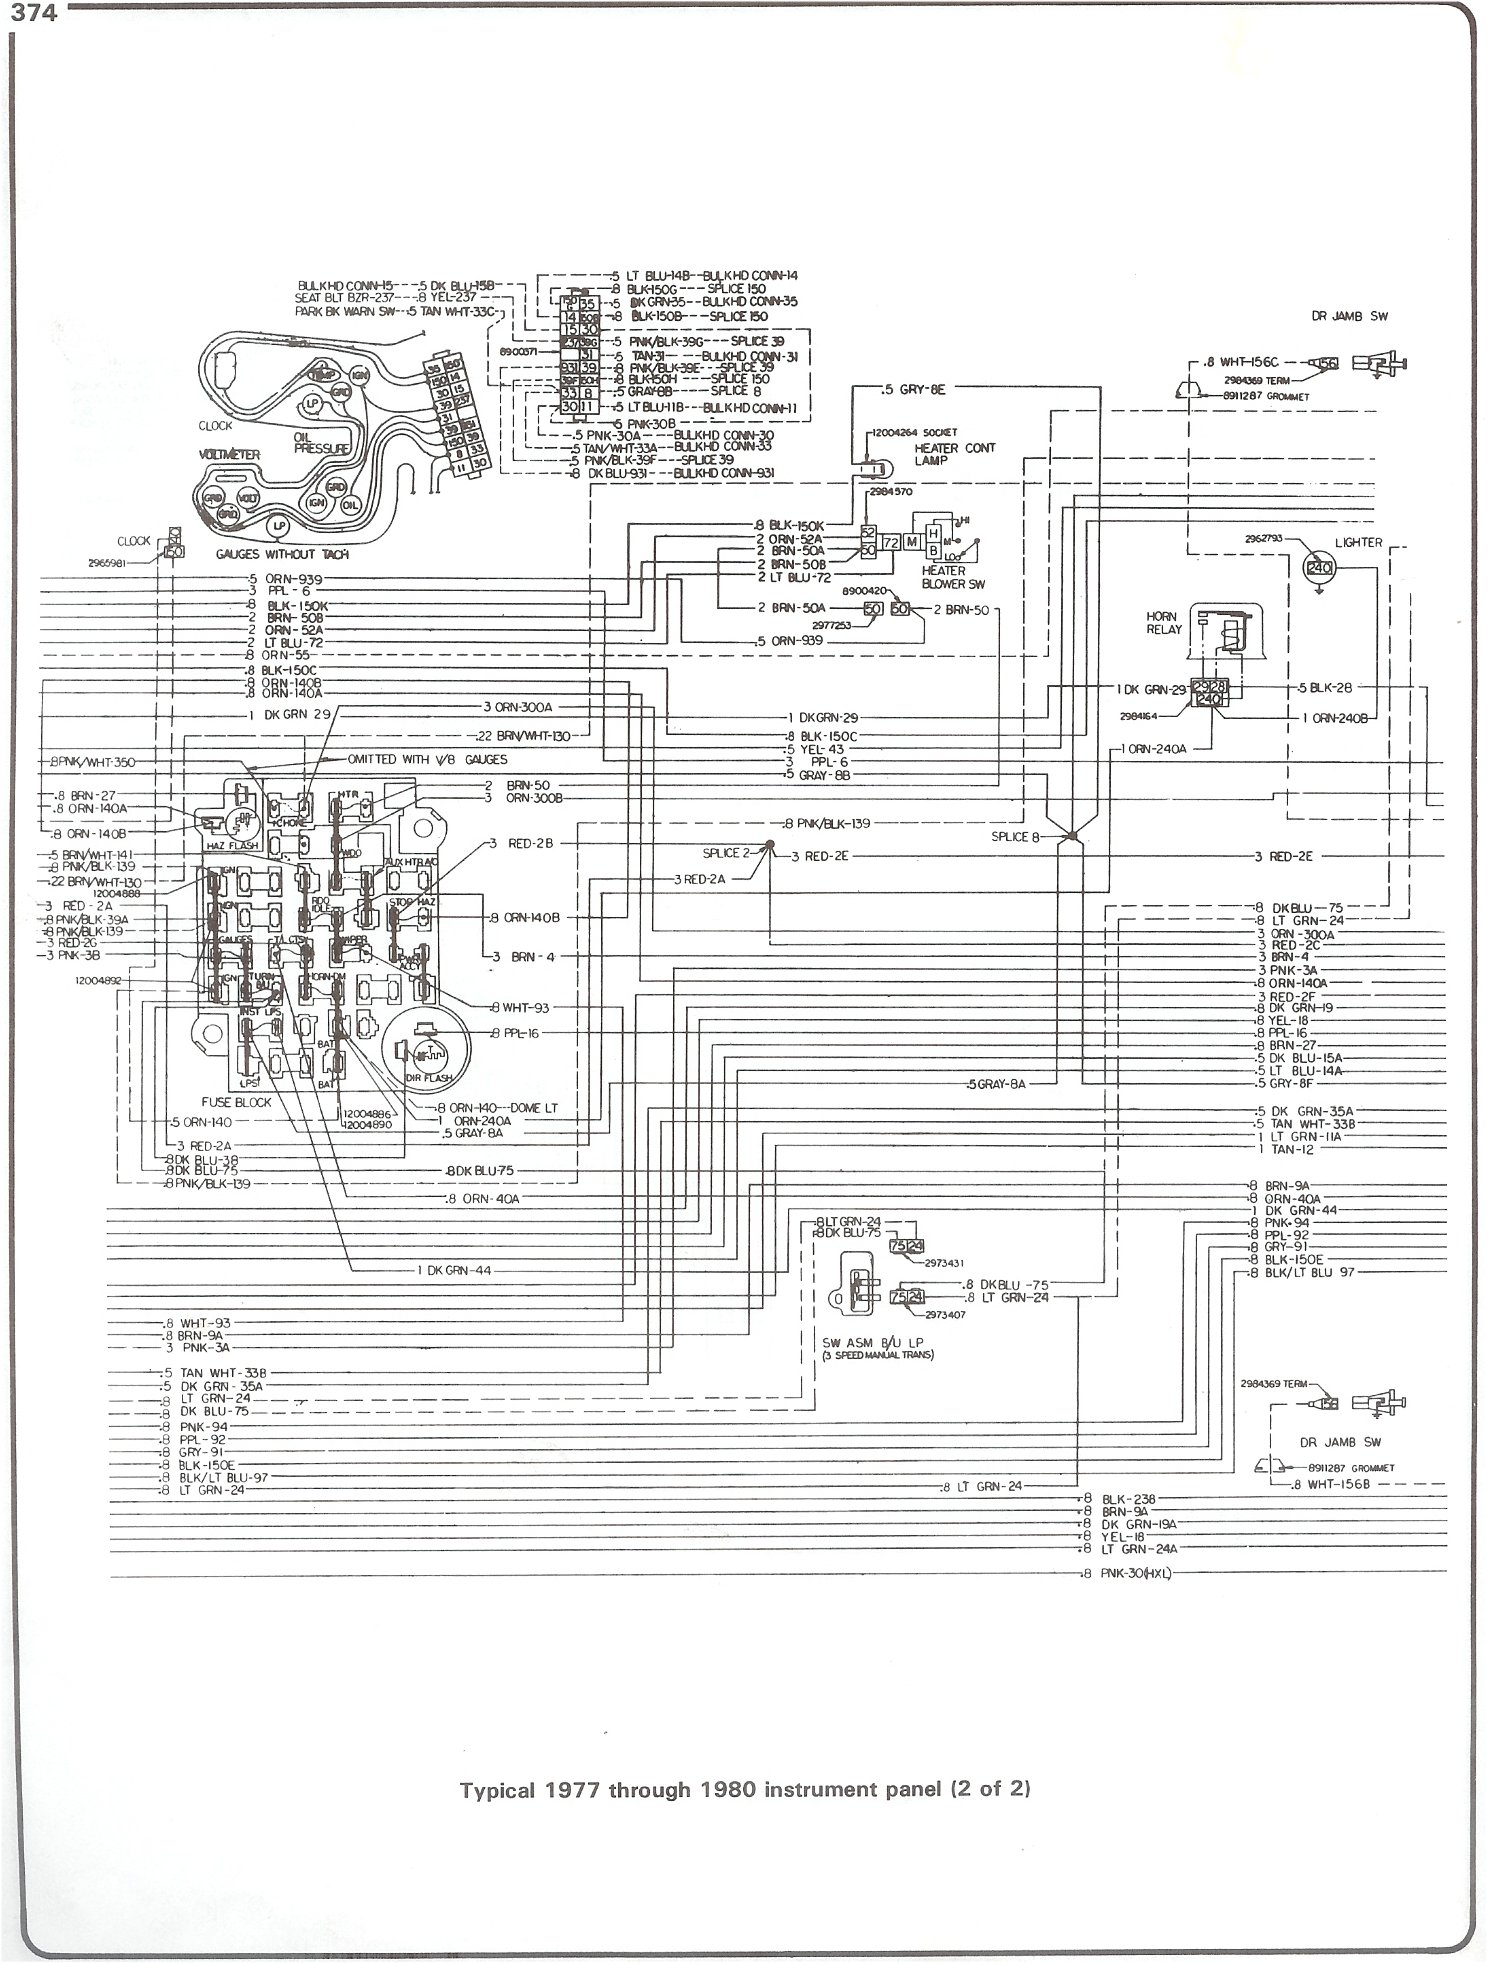 5A2FD 86 S10 Pickup Fuse Box Diagram | Wiring Resources on s10 wiring diagram, s10 front differential diagram, s10 throttle body diagram, s10 engine diagram, s10 radiator diagram, s10 seat diagram, s10 transmission diagram, s10 steering wheel diagram, 2002 chevy trailblazer fuse diagram, 2000 blazer fuse panel diagram, s10 headlight diagram, s10 heater diagram, chevrolet fuse diagram, s10 evap system diagram, s10 spindle diagram, 2003 chevy trailblazer fuse diagram, 2000 chevy impala fuse diagram, chevy s10 fuse diagram, s10 brake diagram,